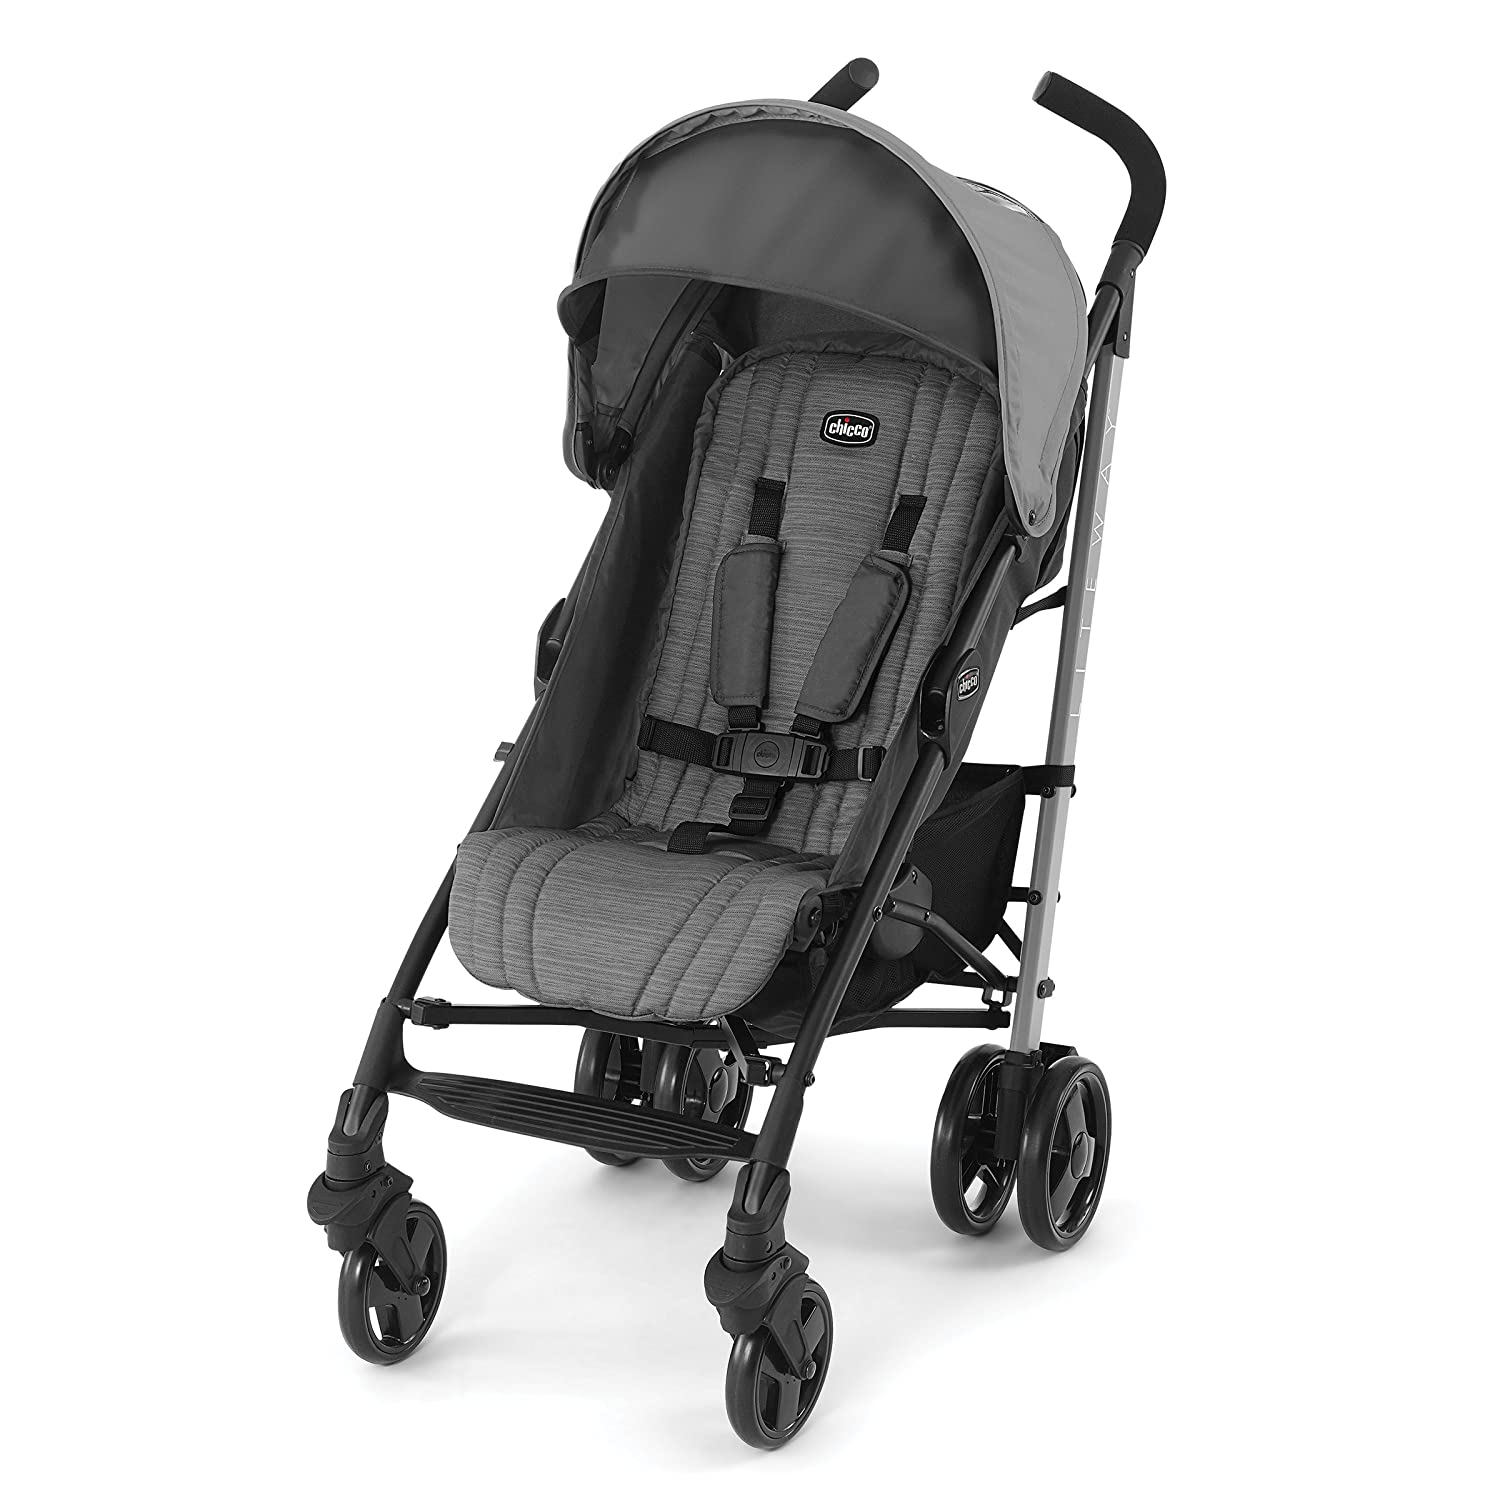 Top 9 Best Lightweight Strollers For Travel (2020 Reviews) 6